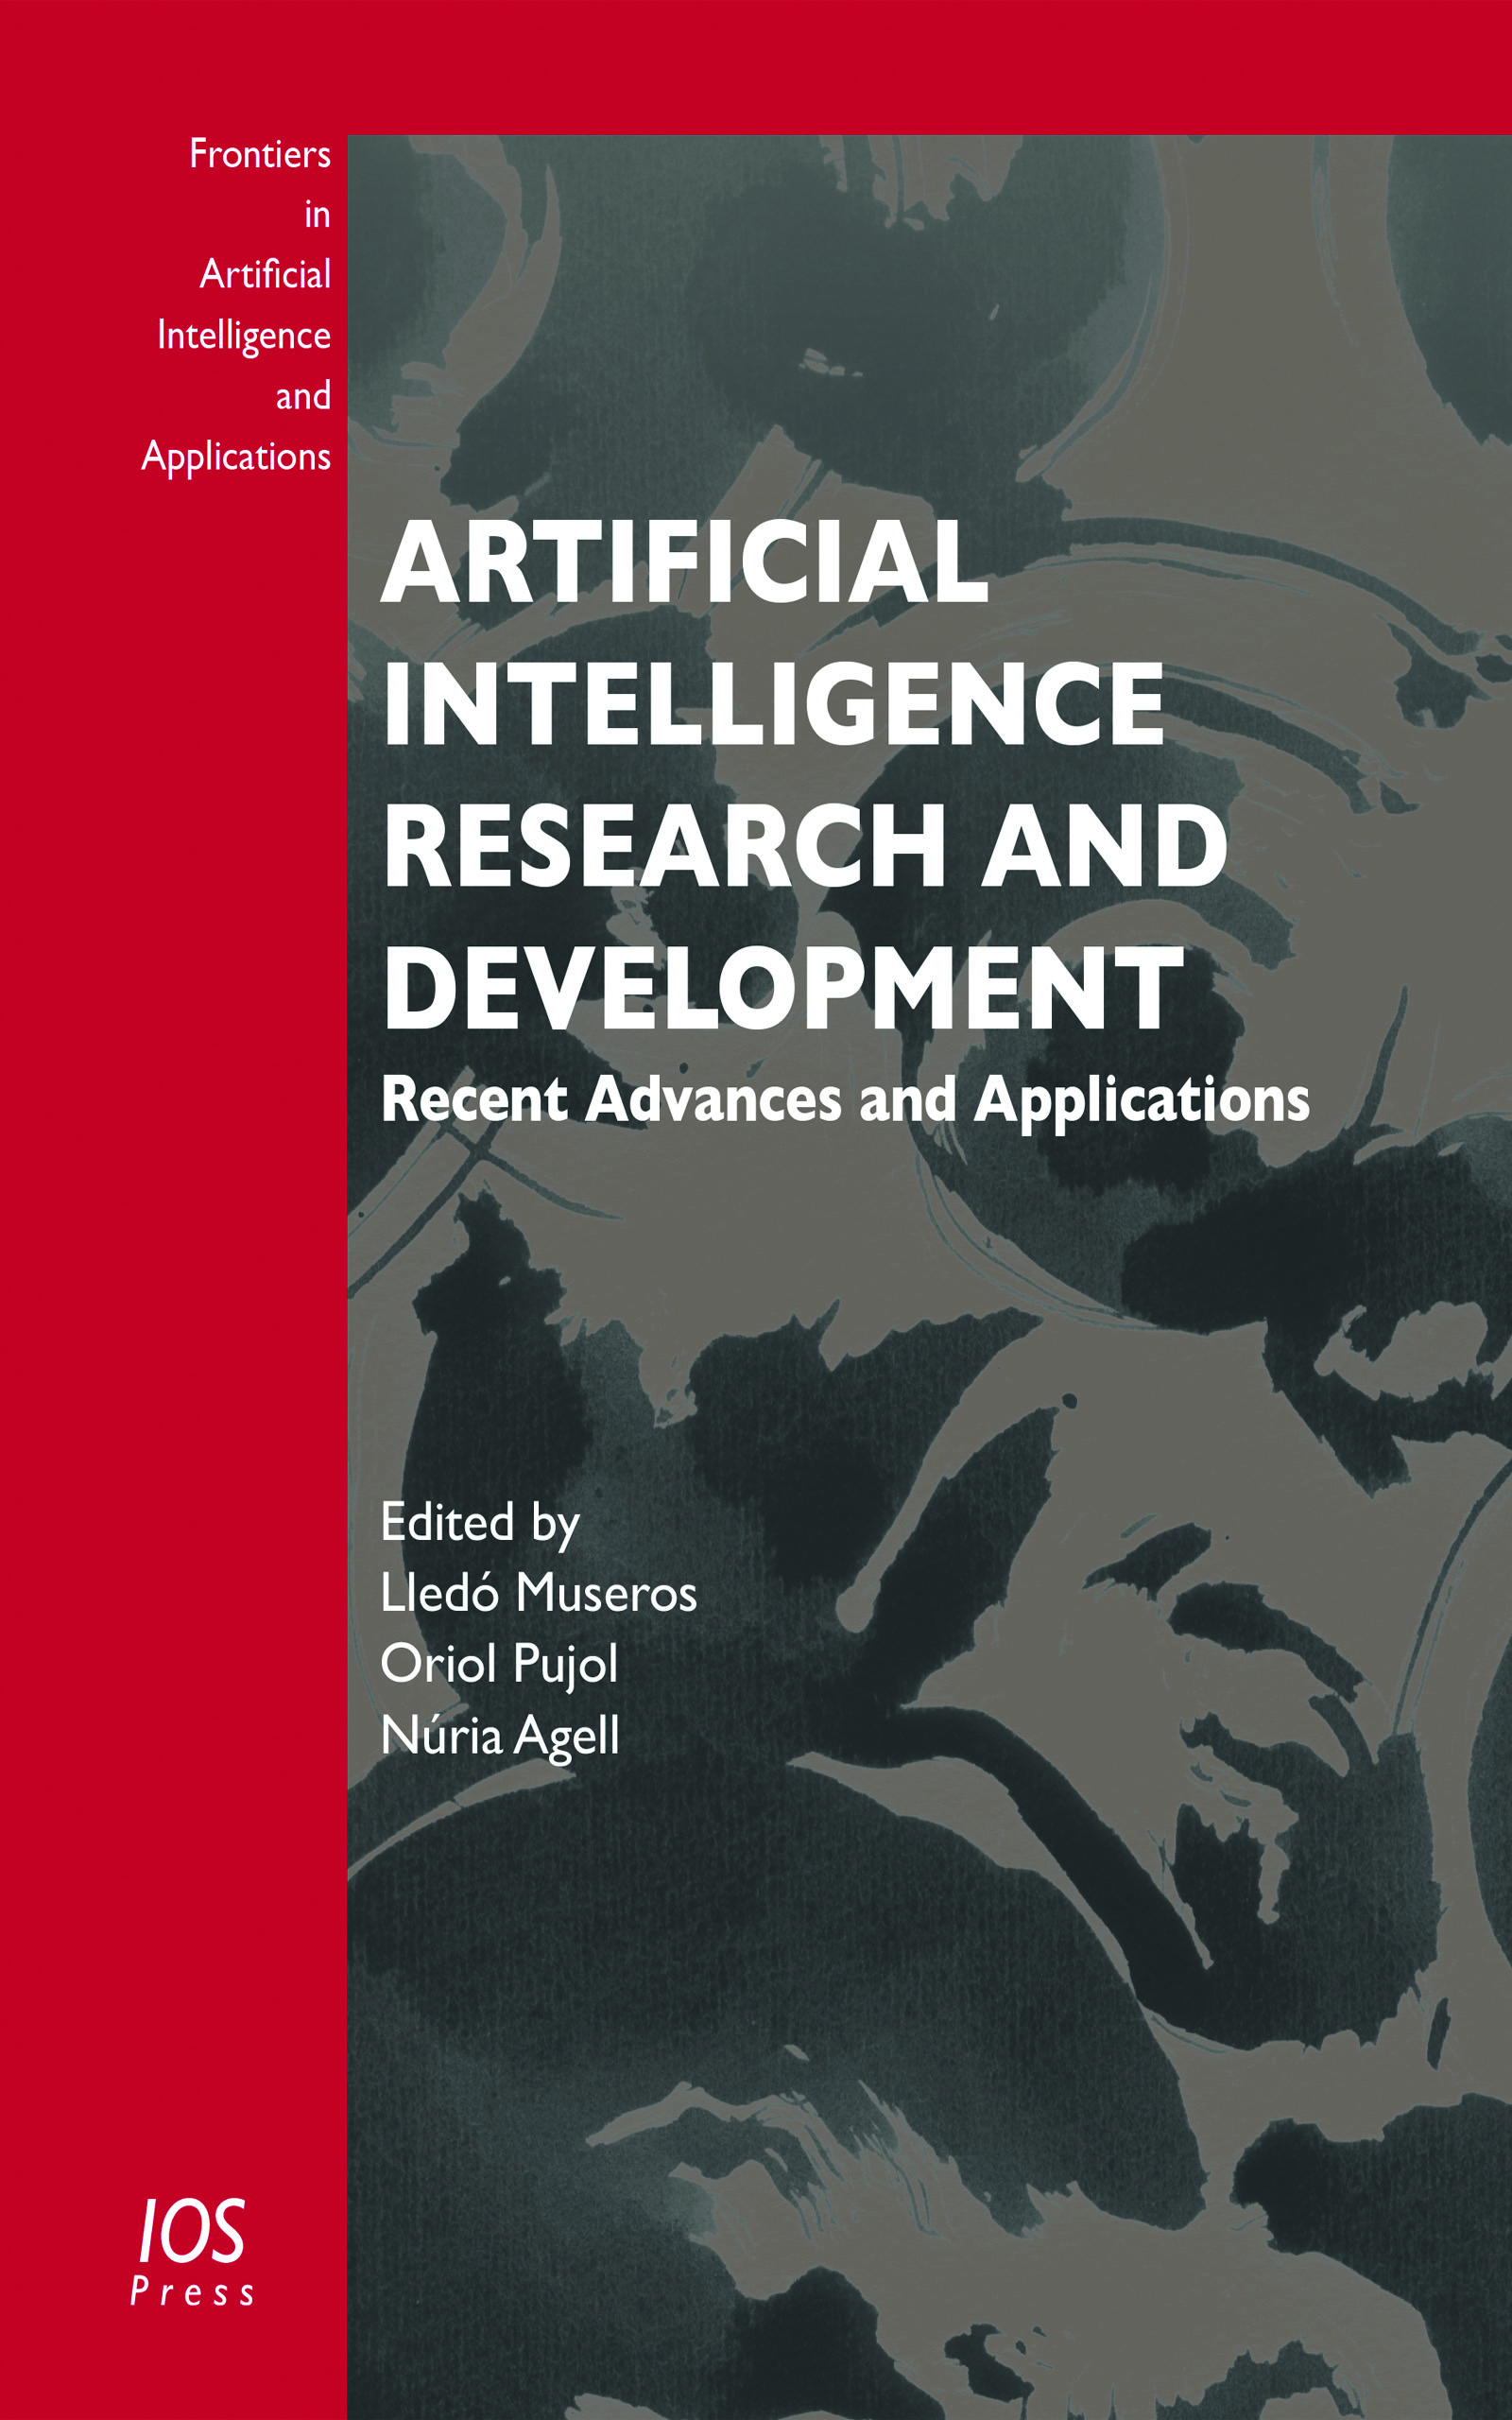 artificial intelligence research Artificial intelligence (ai), sometimes called machine intelligence, is intelligence demonstrated by machines, in contrast to the natural intelligence displayed by humans and other animals.